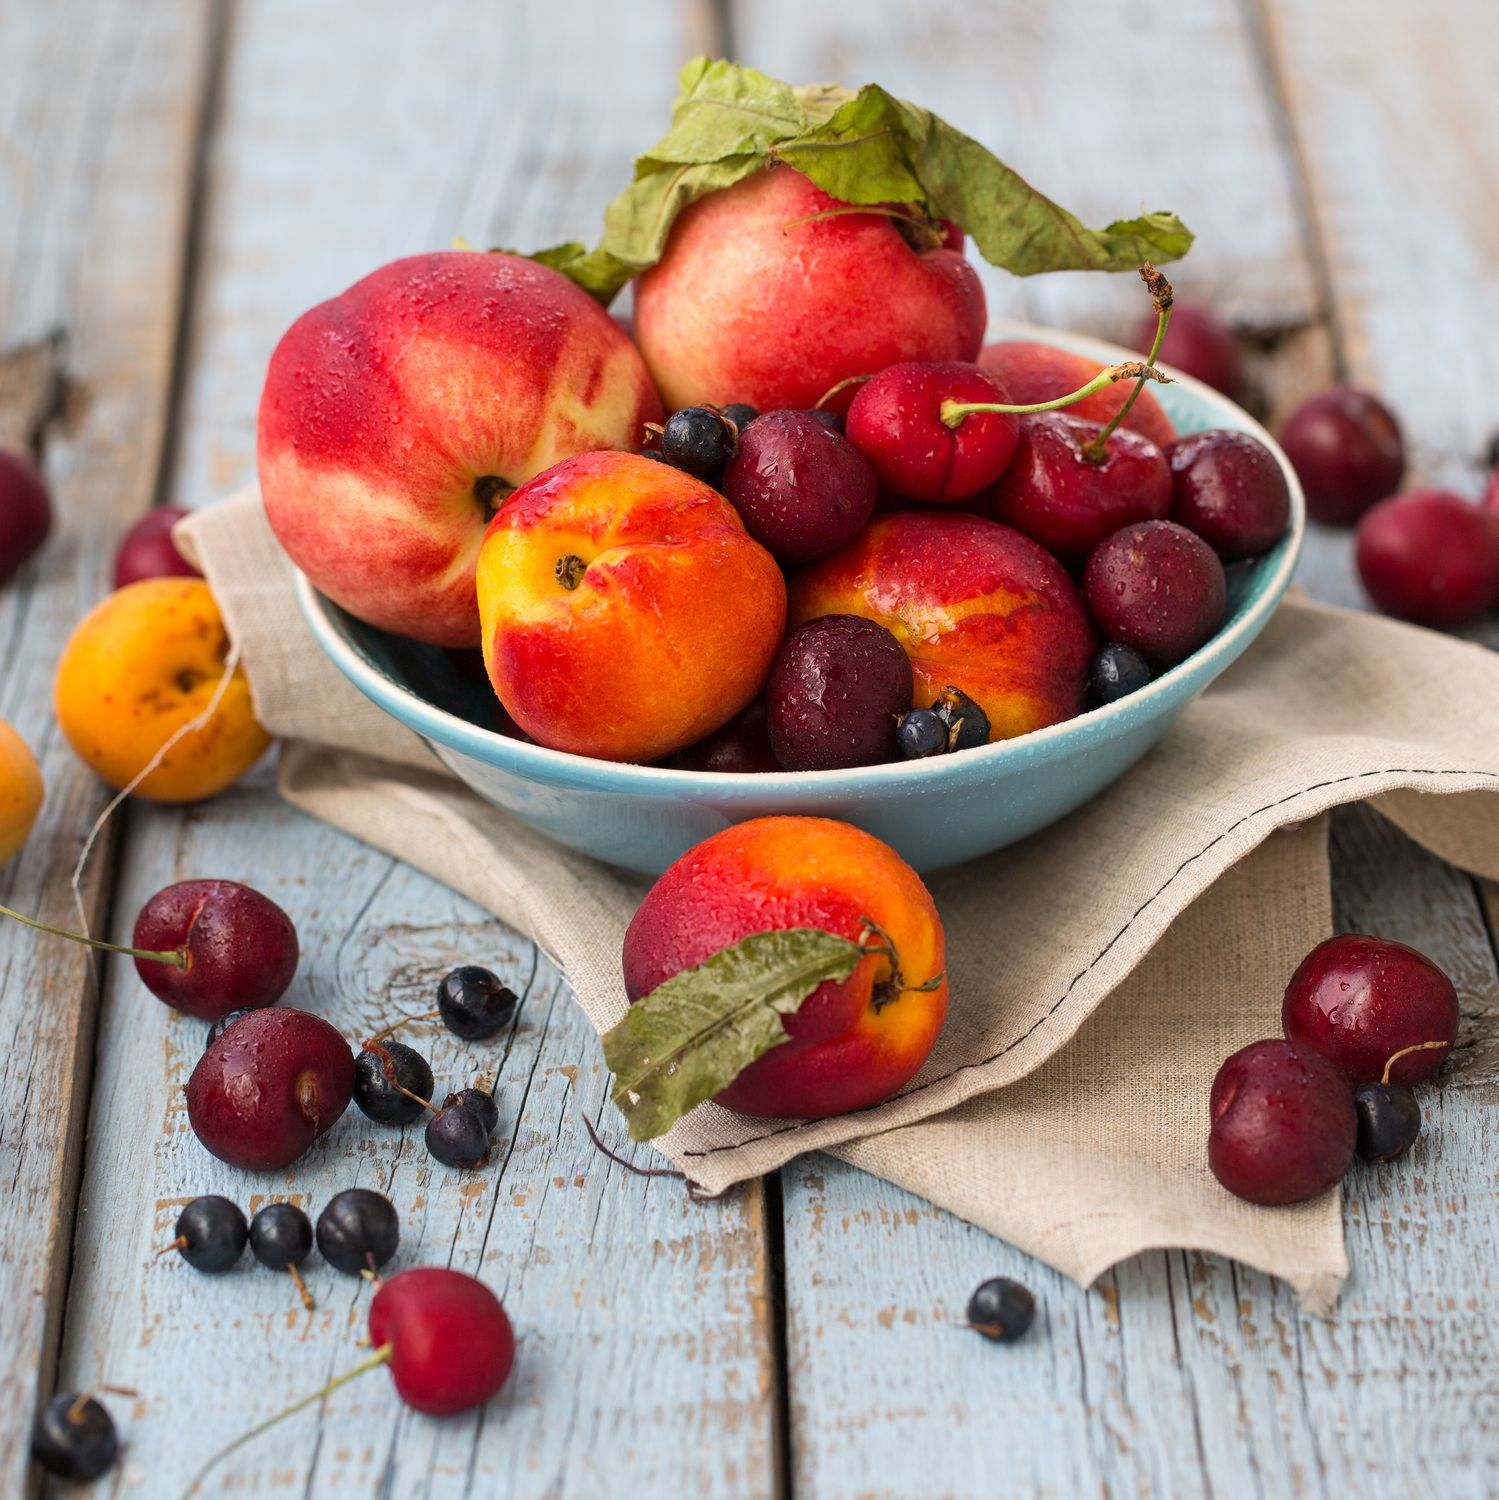 5 Amazing Health Benefits of Stone Fruits, According to Dietitians